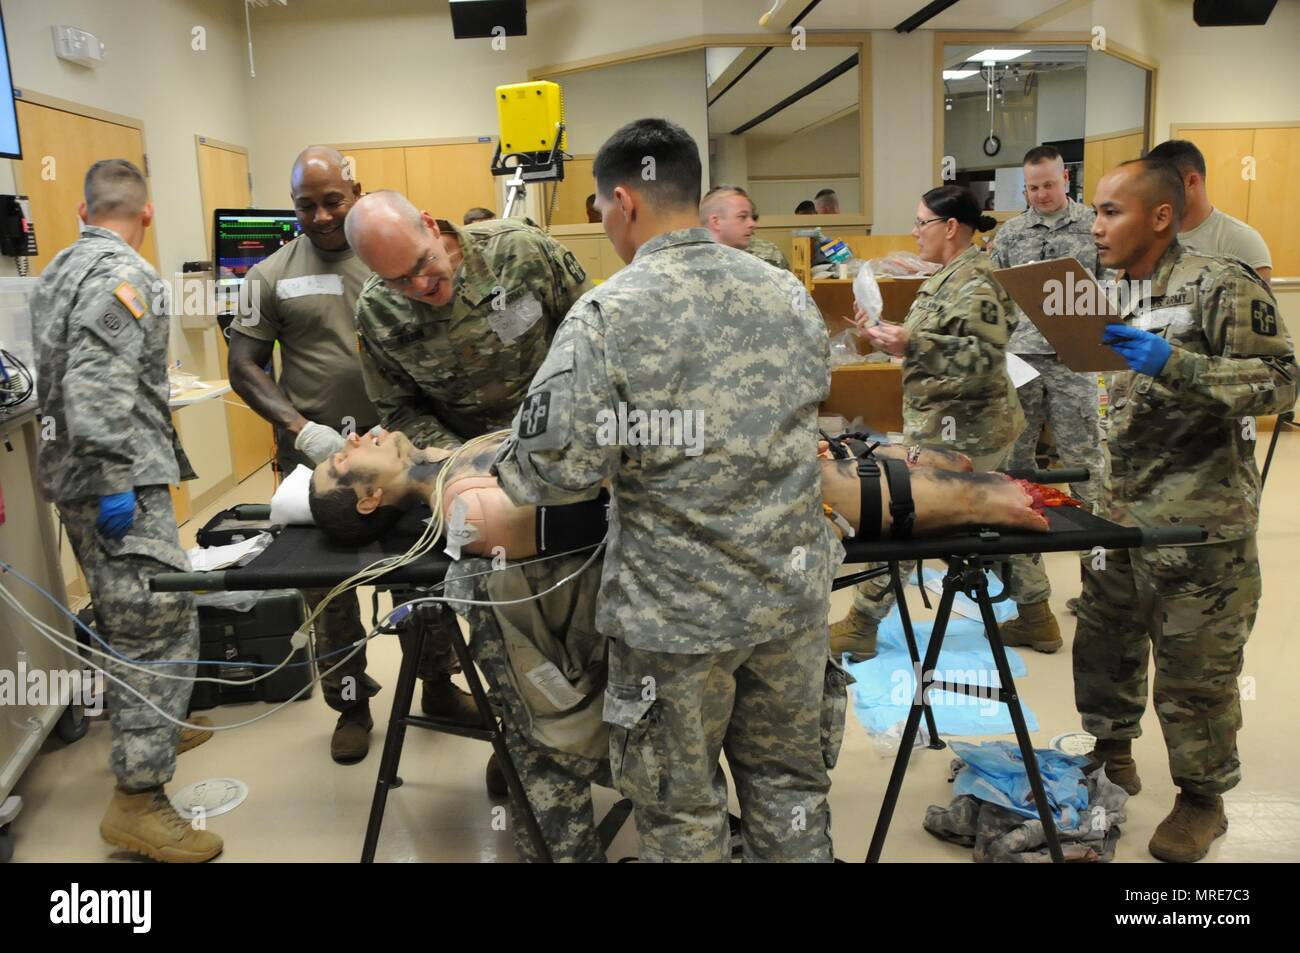 Soldiers assigned to the 807th Medical Command's 228th Combat Support Hospital based out of San Antonio, Texas attend a three-day training exercise on 2-4 Jun. at the the Mayo Clinic Multidisciplinary Simulation Center located in Rochester, Minnesota.    The MCMSC TeamSTEPPS Exercise, hosted by Army Reserve Medical Command's Medical Readiness and Training Command, provides Army Reserve medical units and healthcare providers the opportunity to work together in a realistic setting that replicates theater-specific injuries and focuses on teaching and incorporating TeamSTEPPS into Army Reserve pro Stock Photo